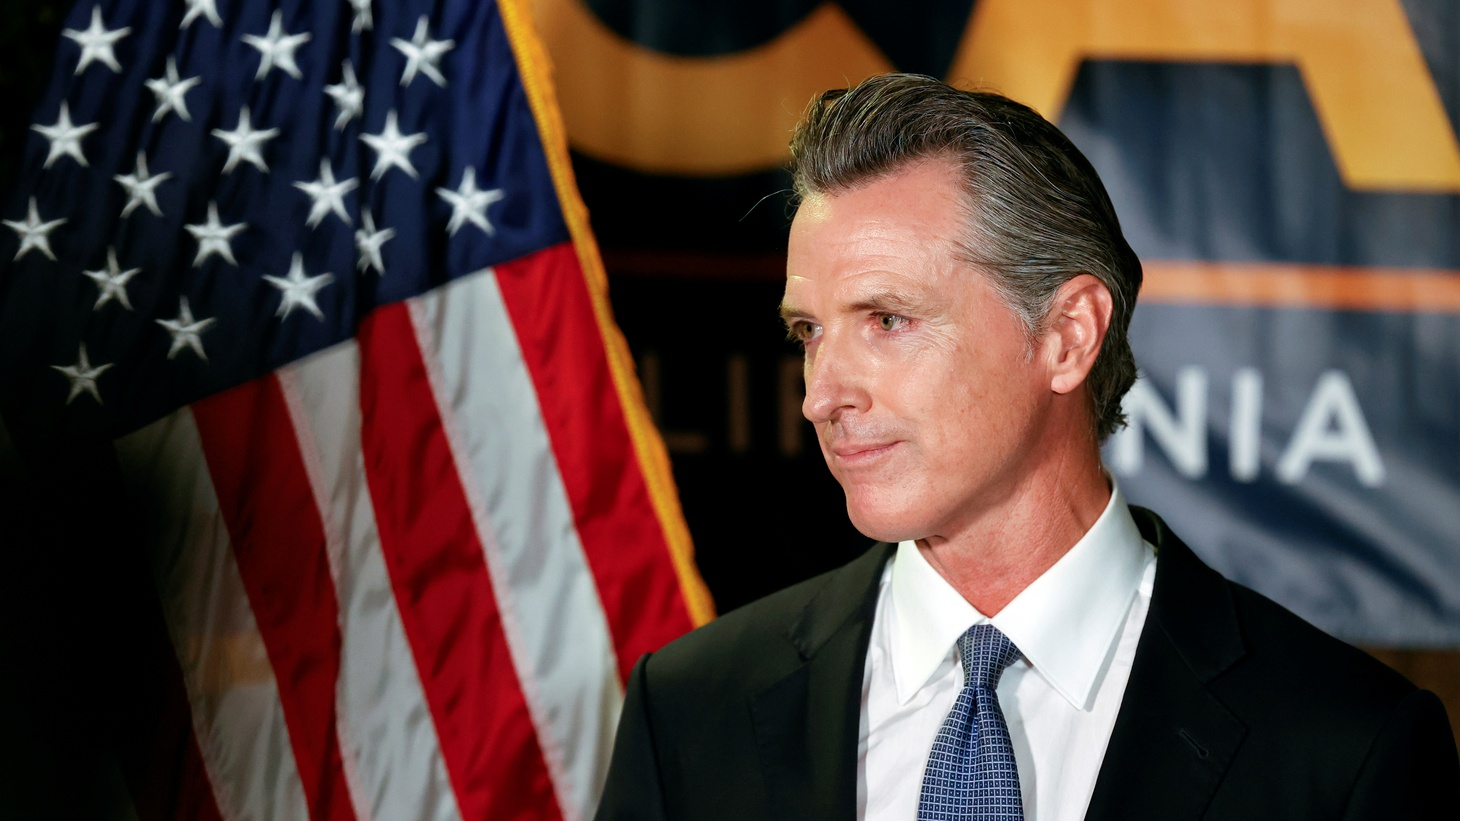 California Governor Gavin Newsom makes an appearance after the polls close on the recall election, at the California Democratic Party headquarters in Sacramento, California, U.S., September 14, 2021.